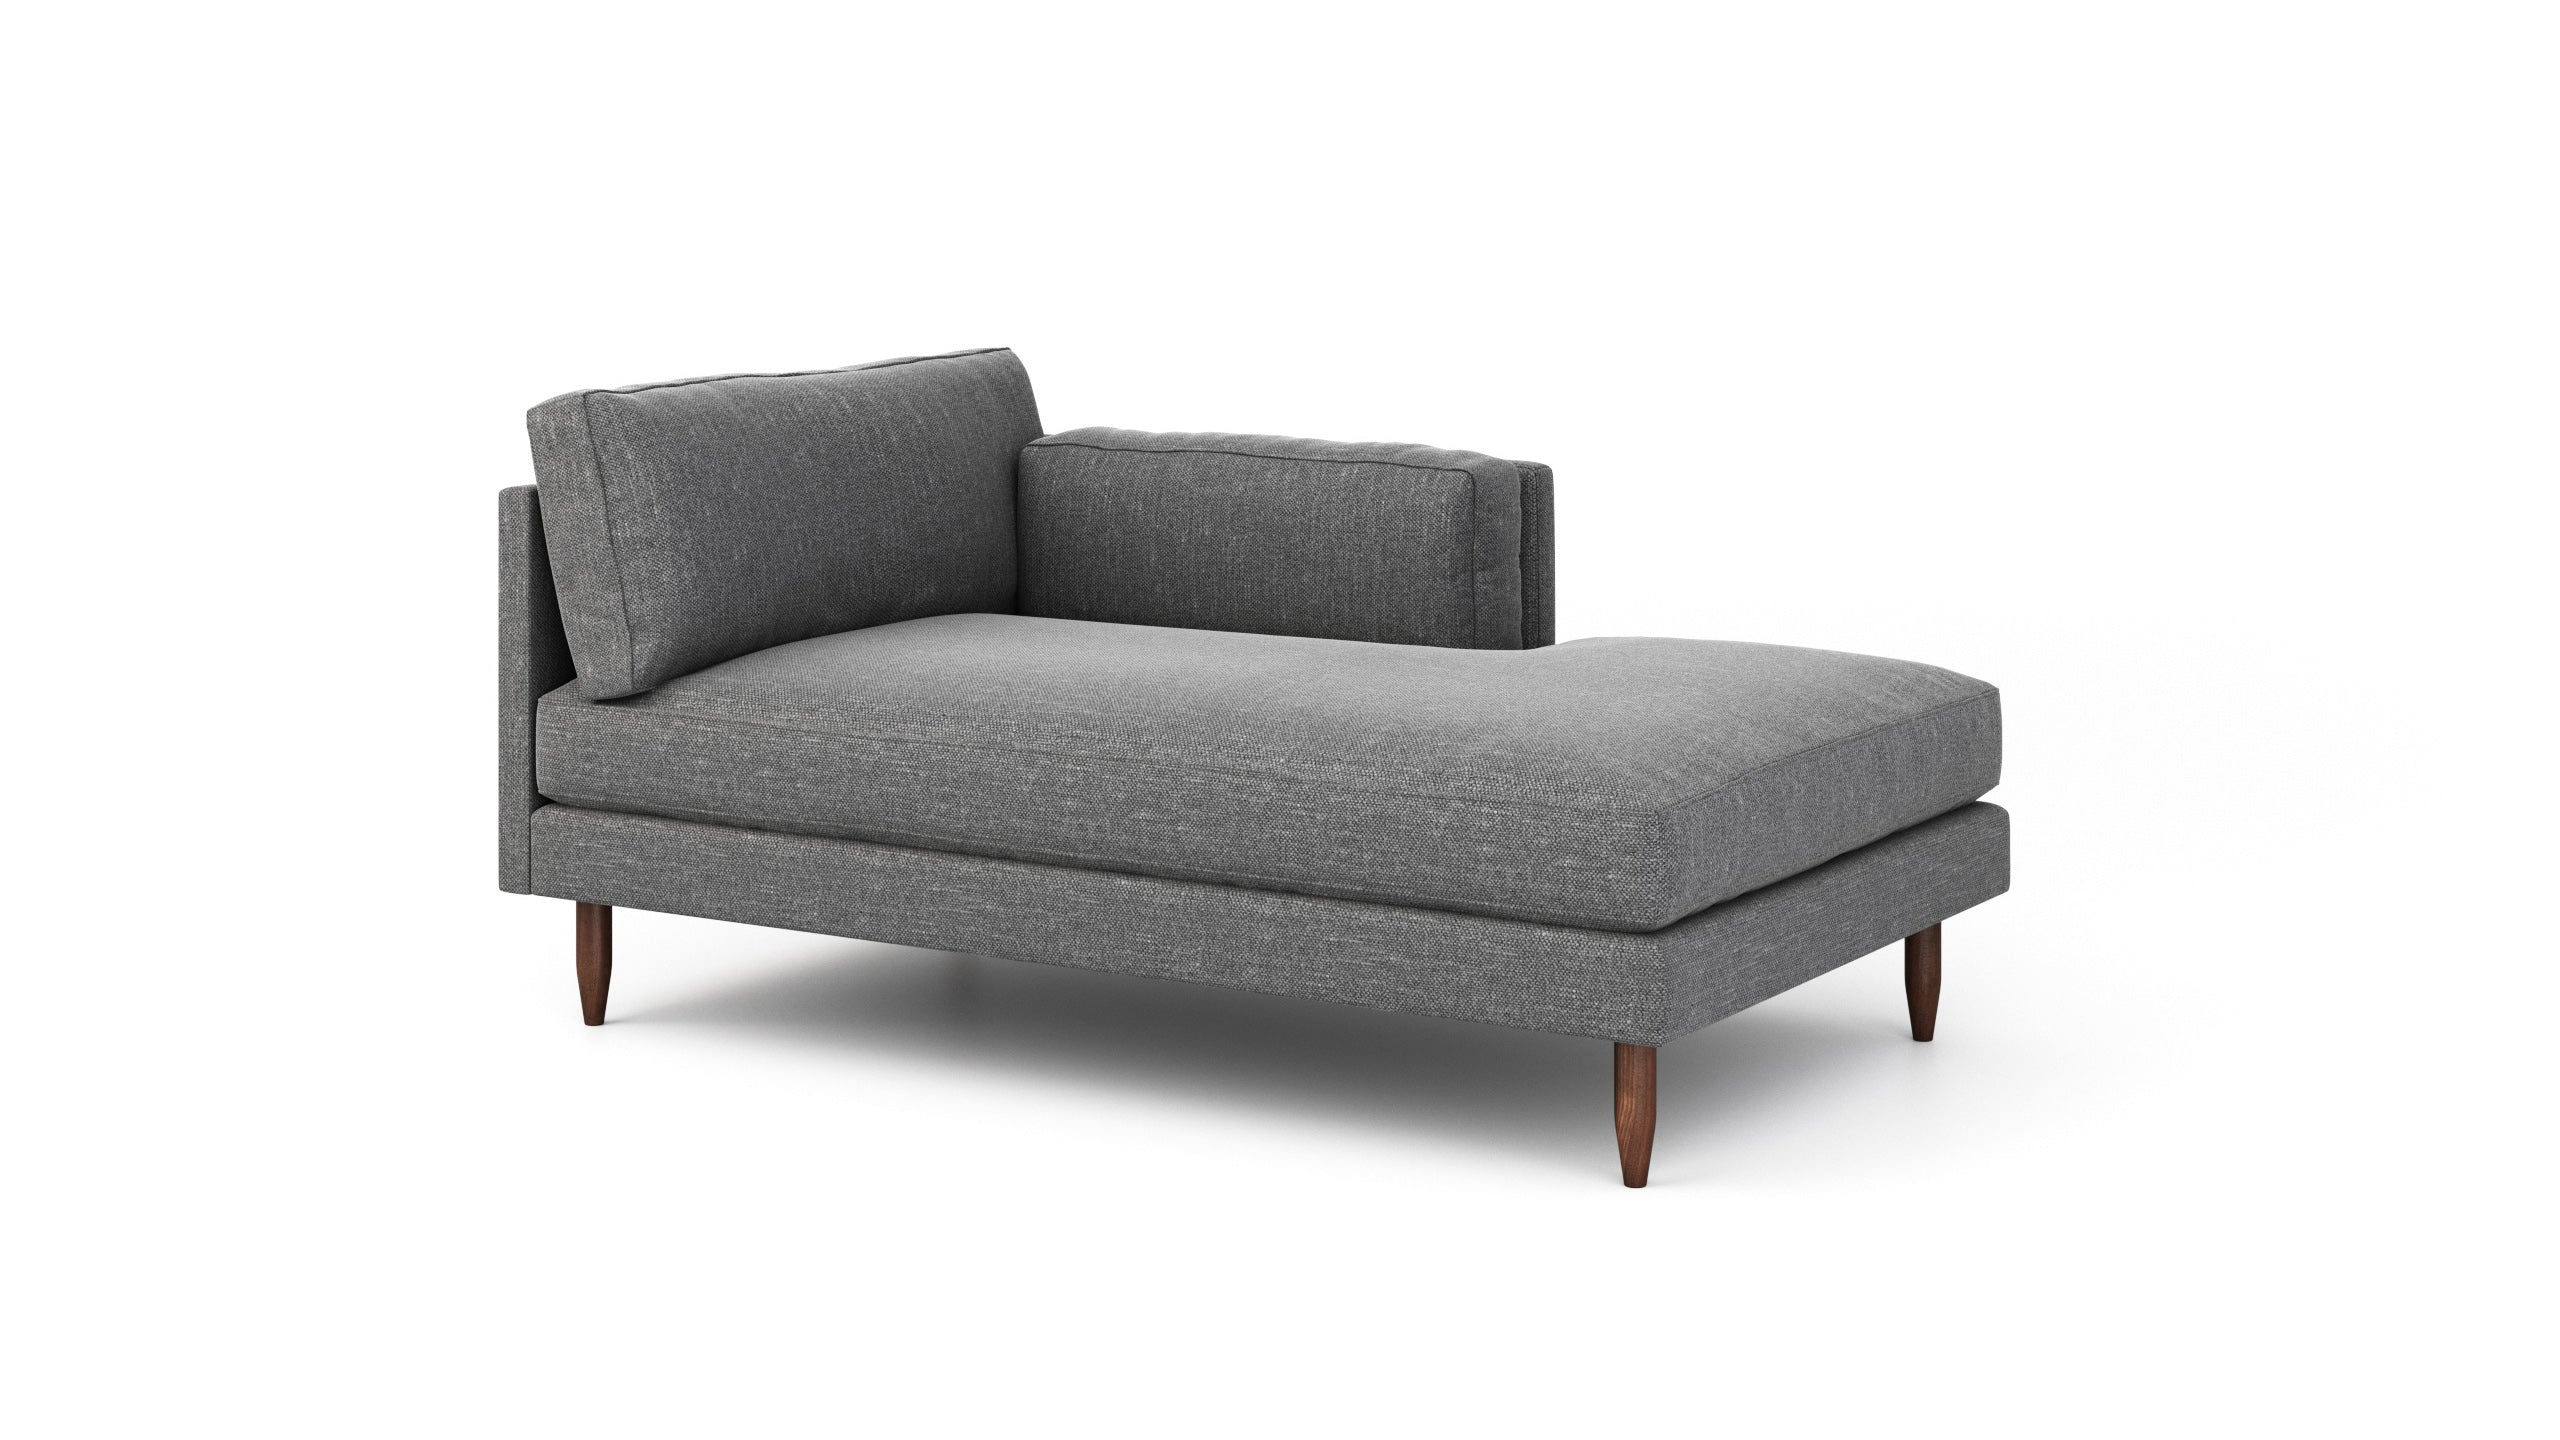 Skinny Fat Chaise